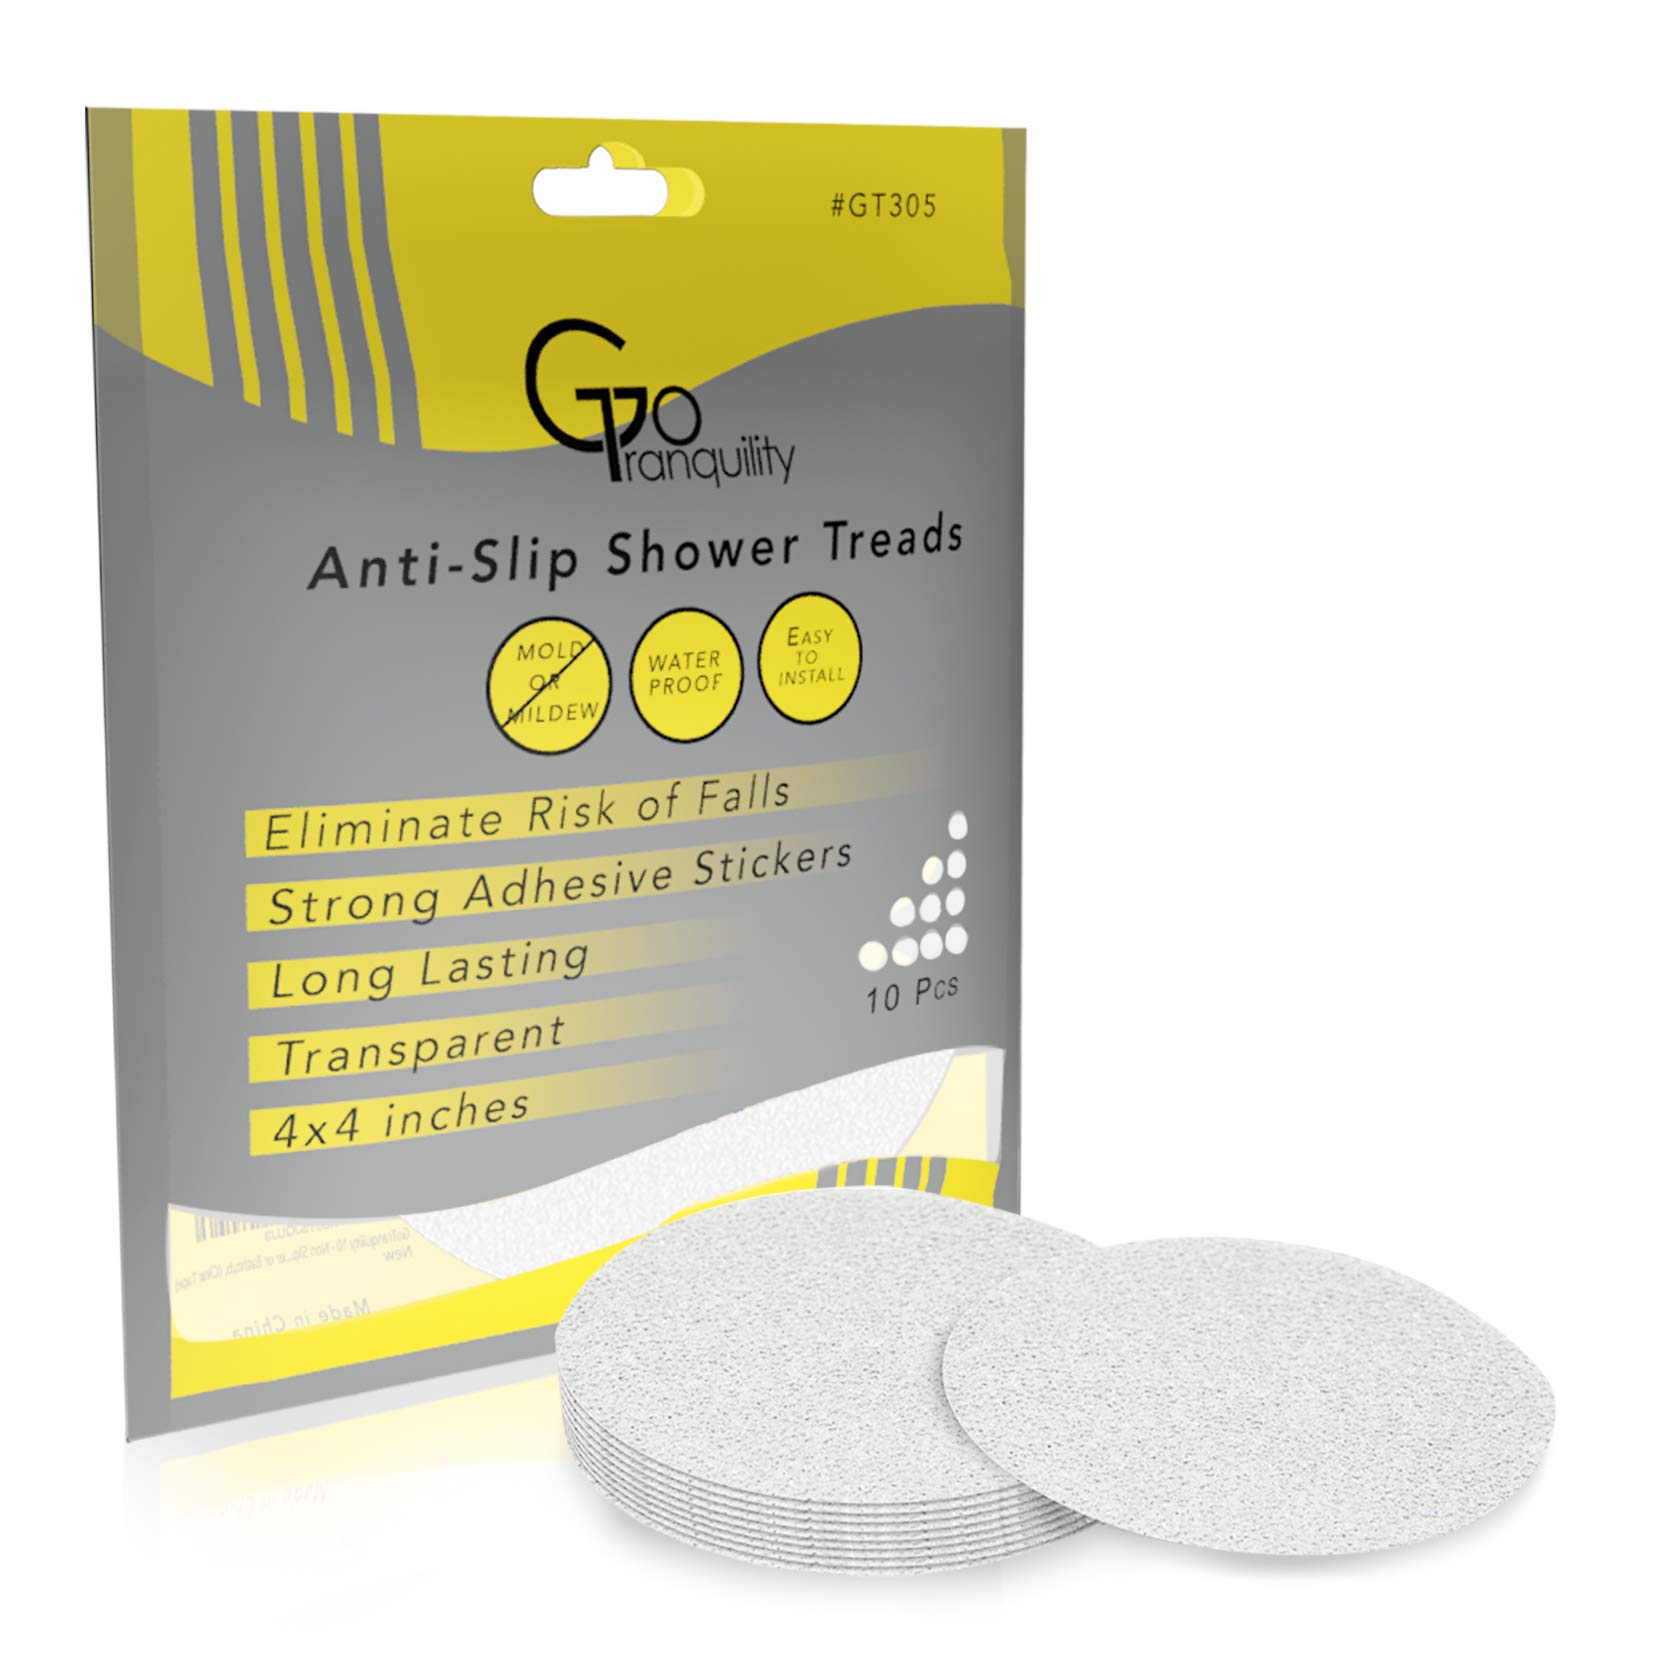 Non Slip Safety Shower Grip Treads to Prevent Slippery Surfaces in The Bathtub 10 Non-Skid Clear PEVA Discs Anti-Slip Stickers